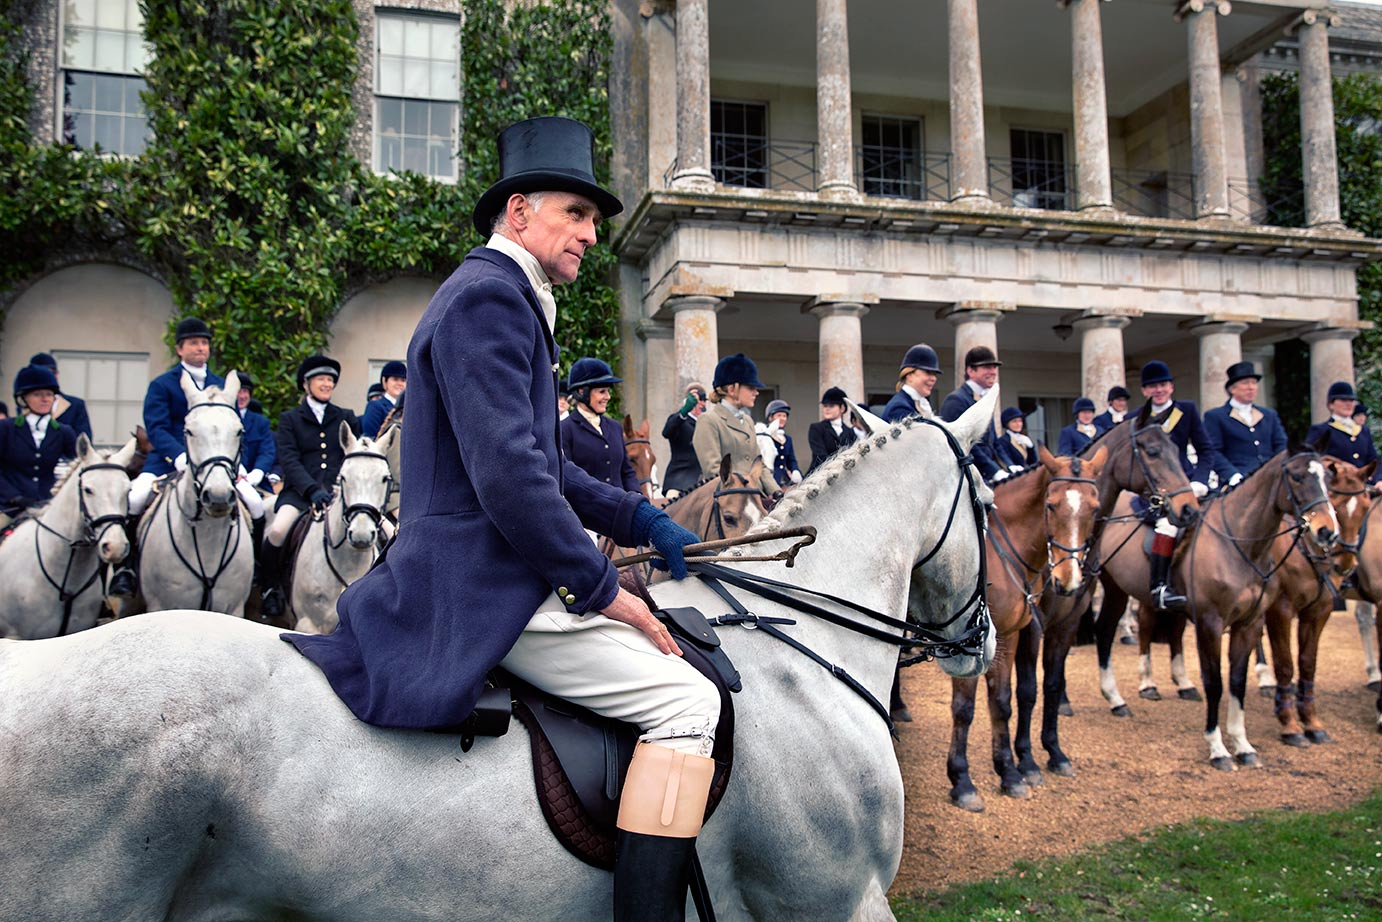 Rider mounted in front of Goodwood house wearing top hat